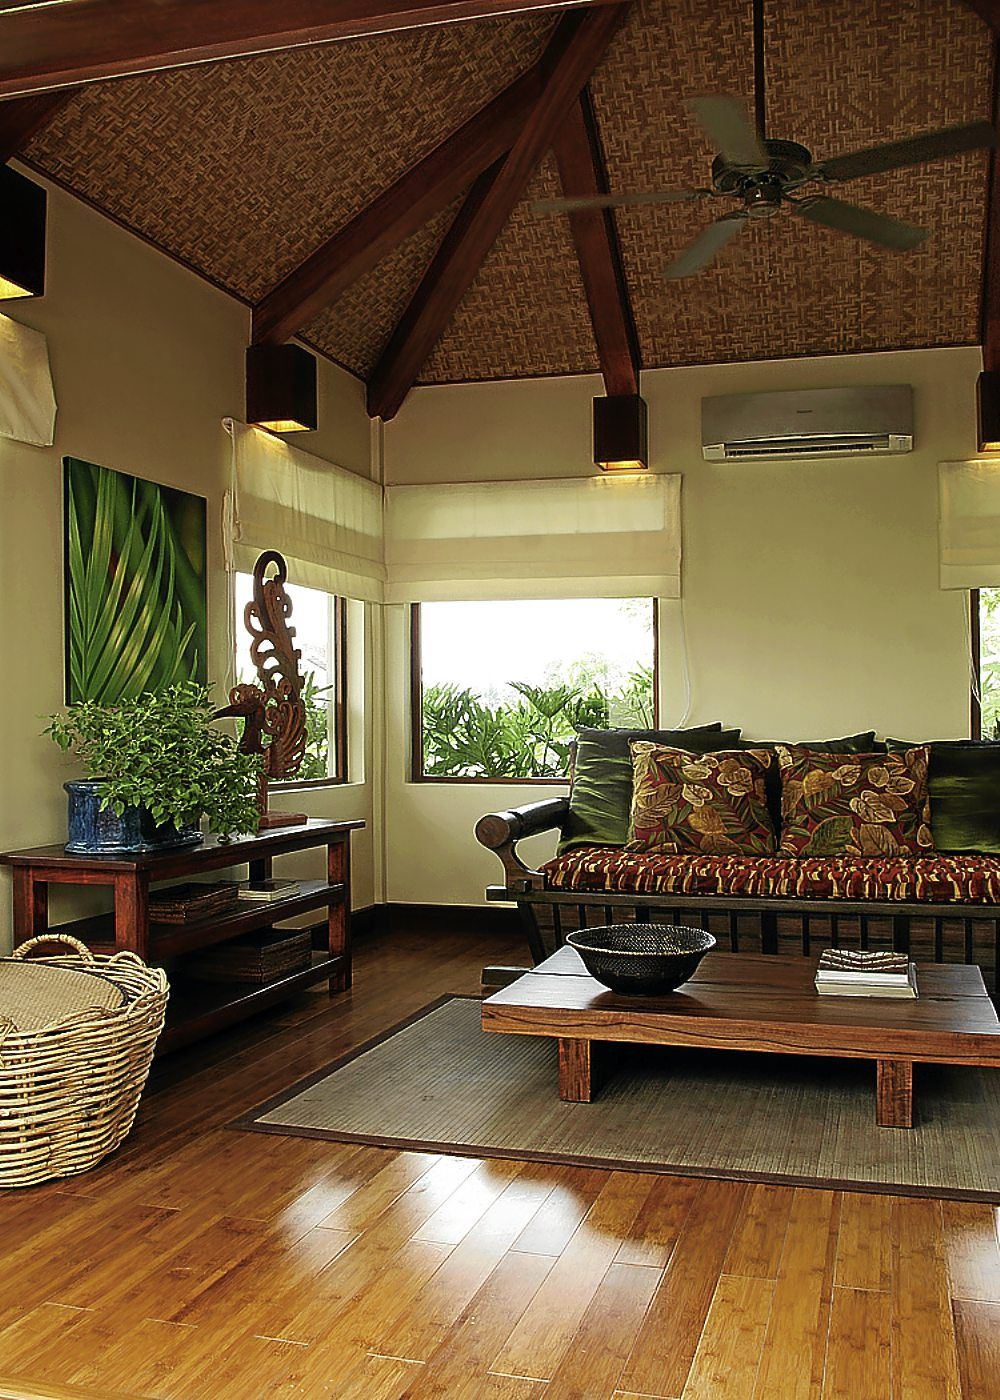 Modern filipino nipa hut house interior ma osa interiors Home interior pictures for sale